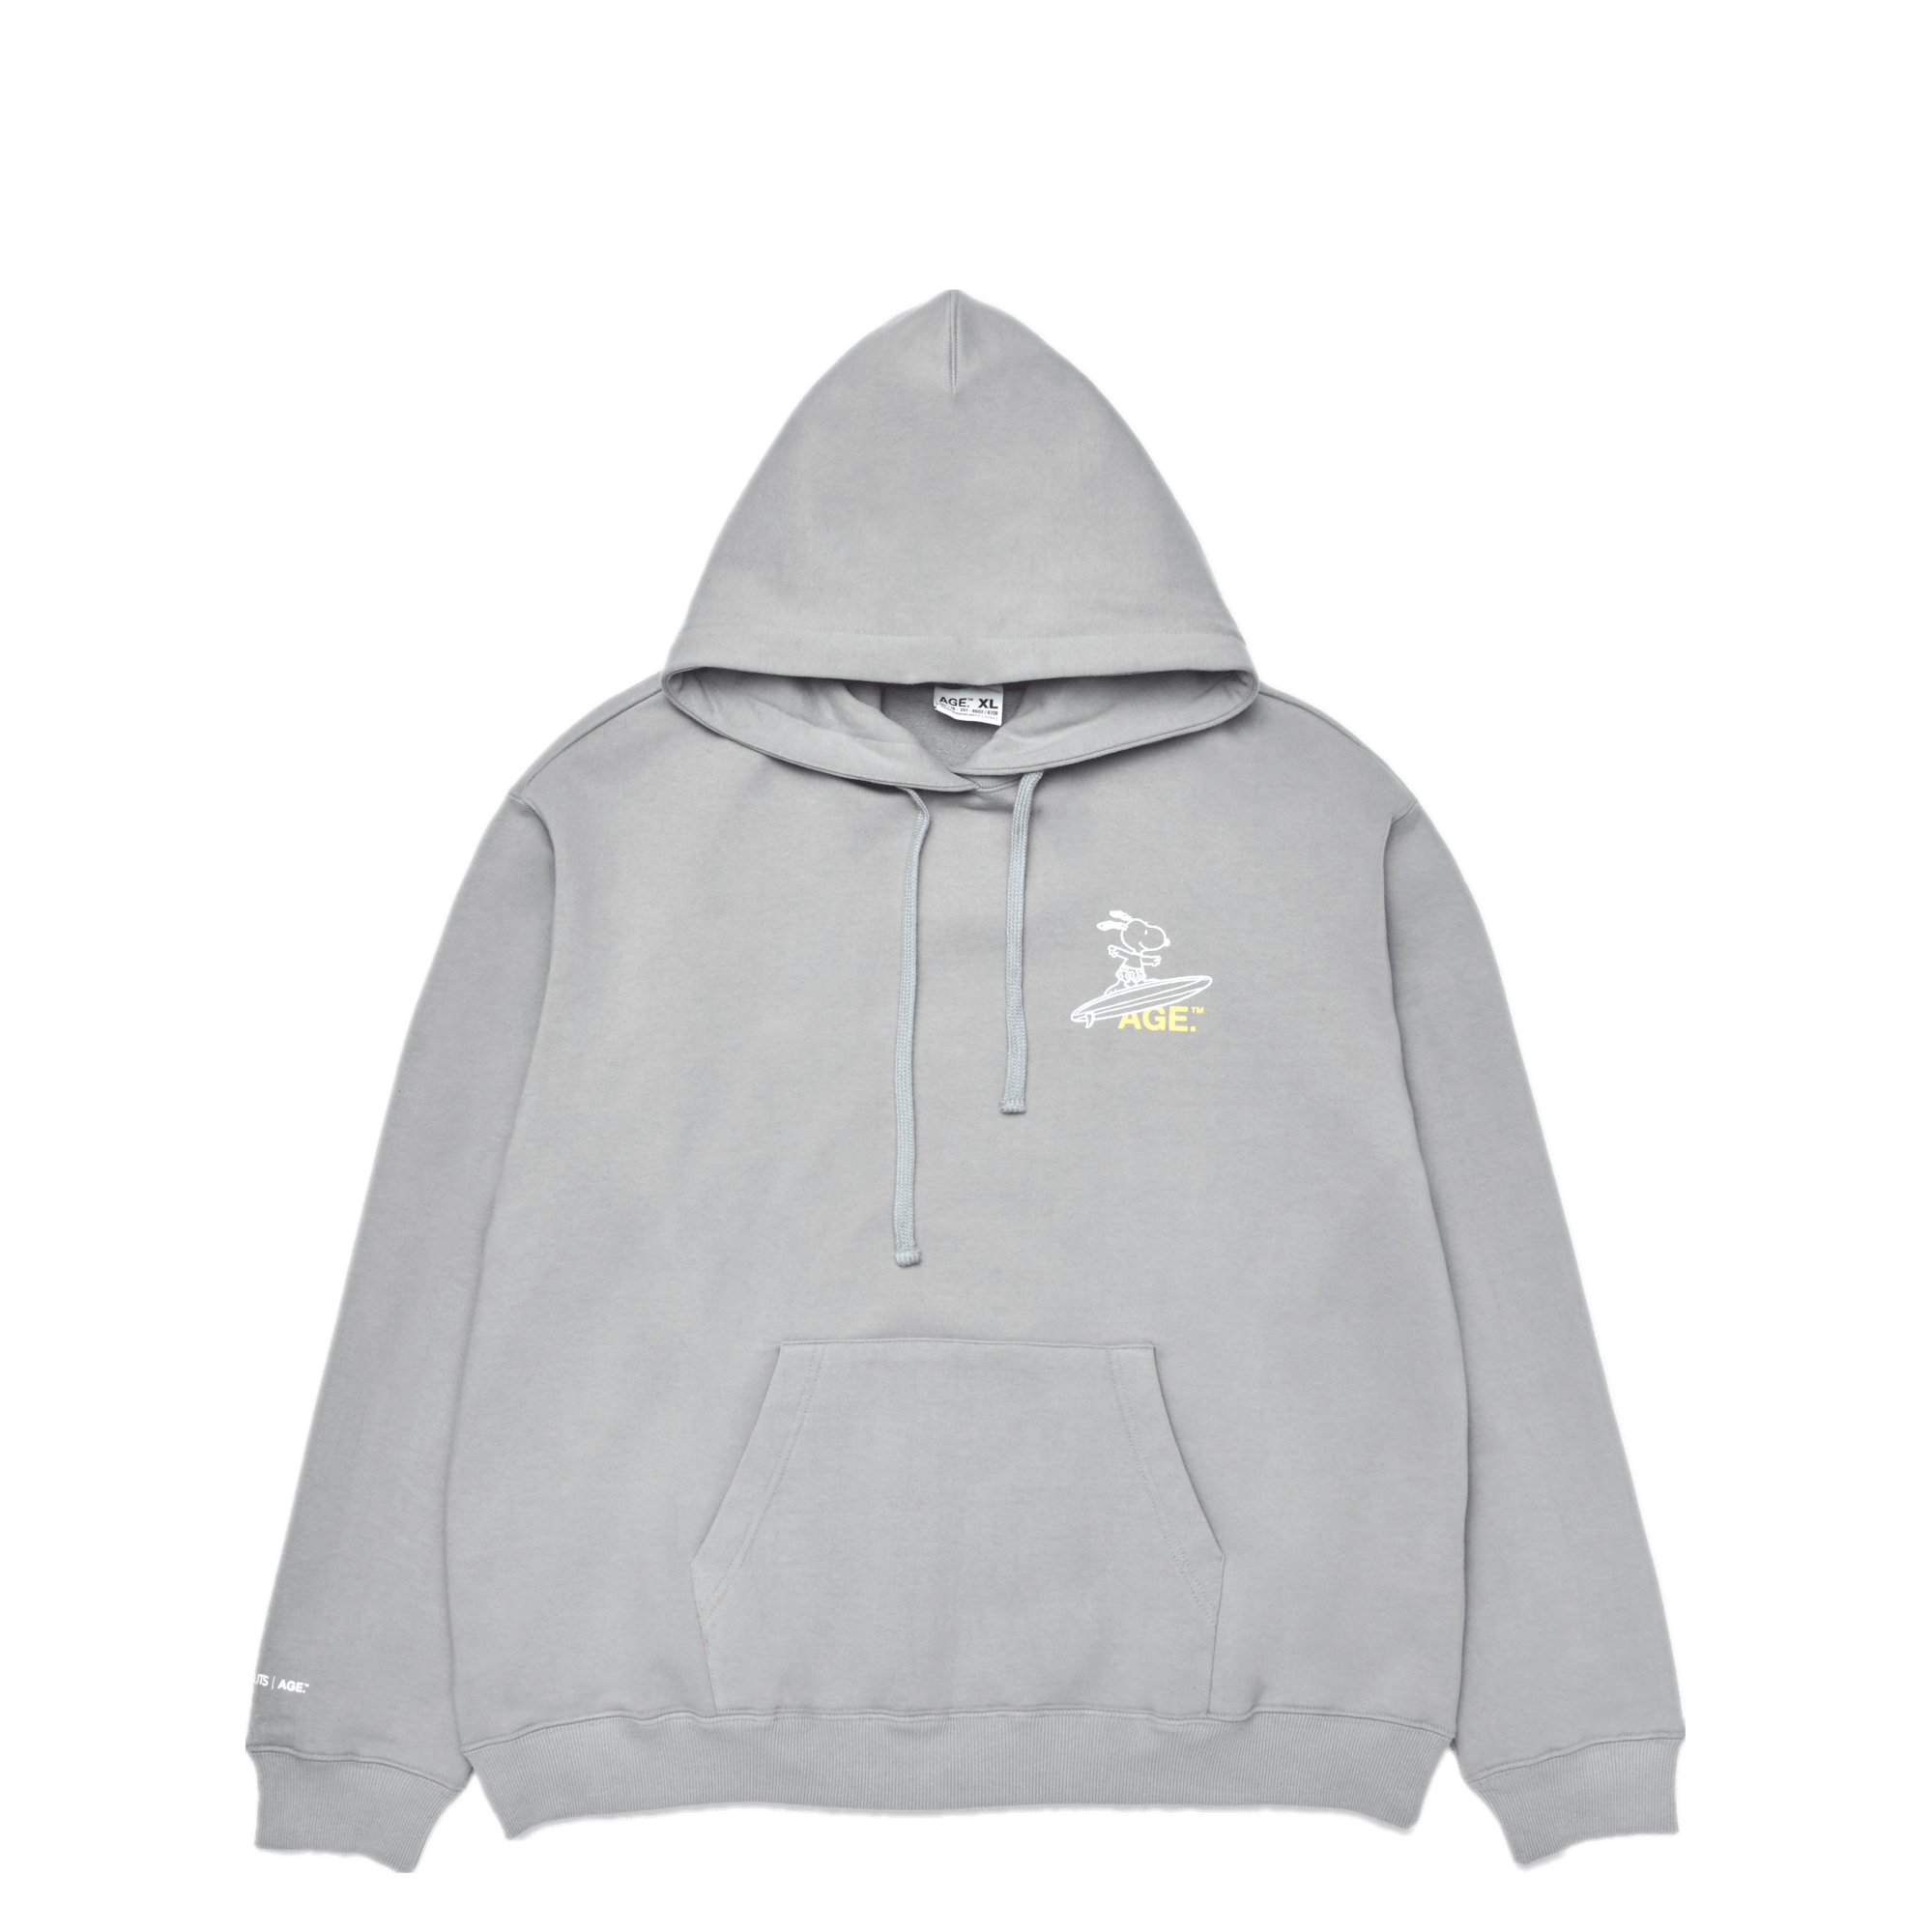 AGE X Snoopy Surfing Hooded GR/YL